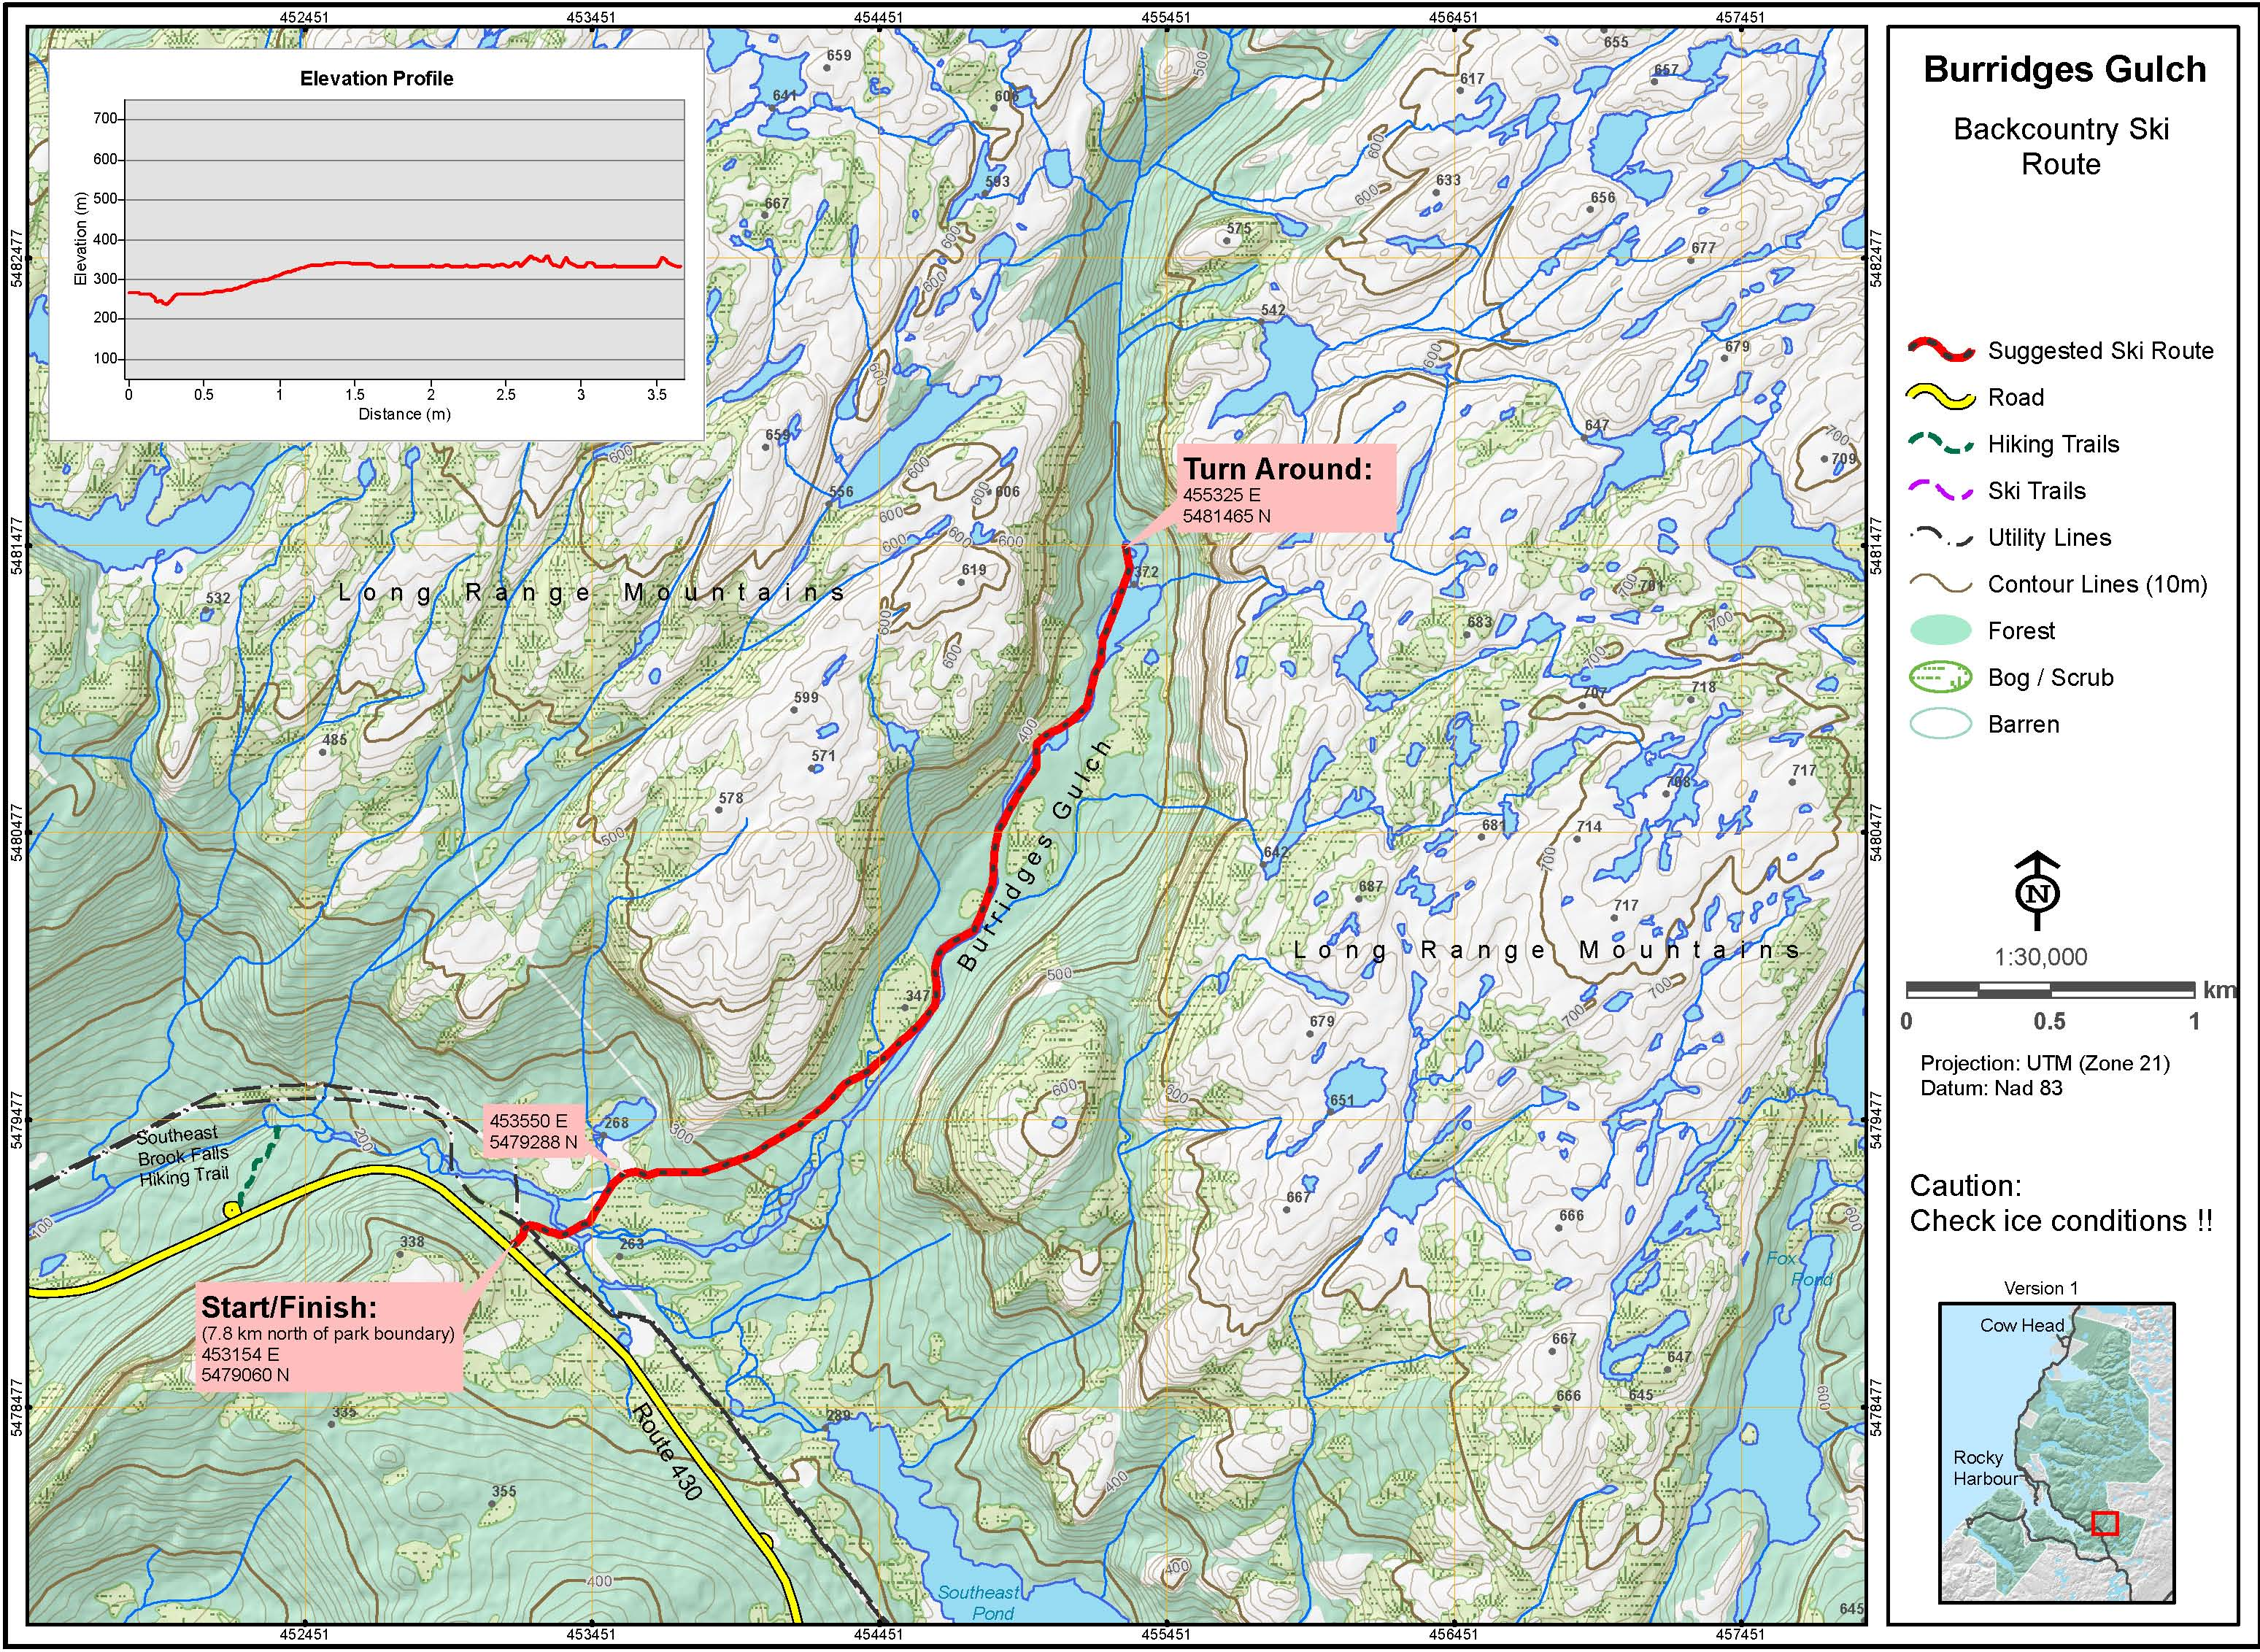 Burridges Gulch Map